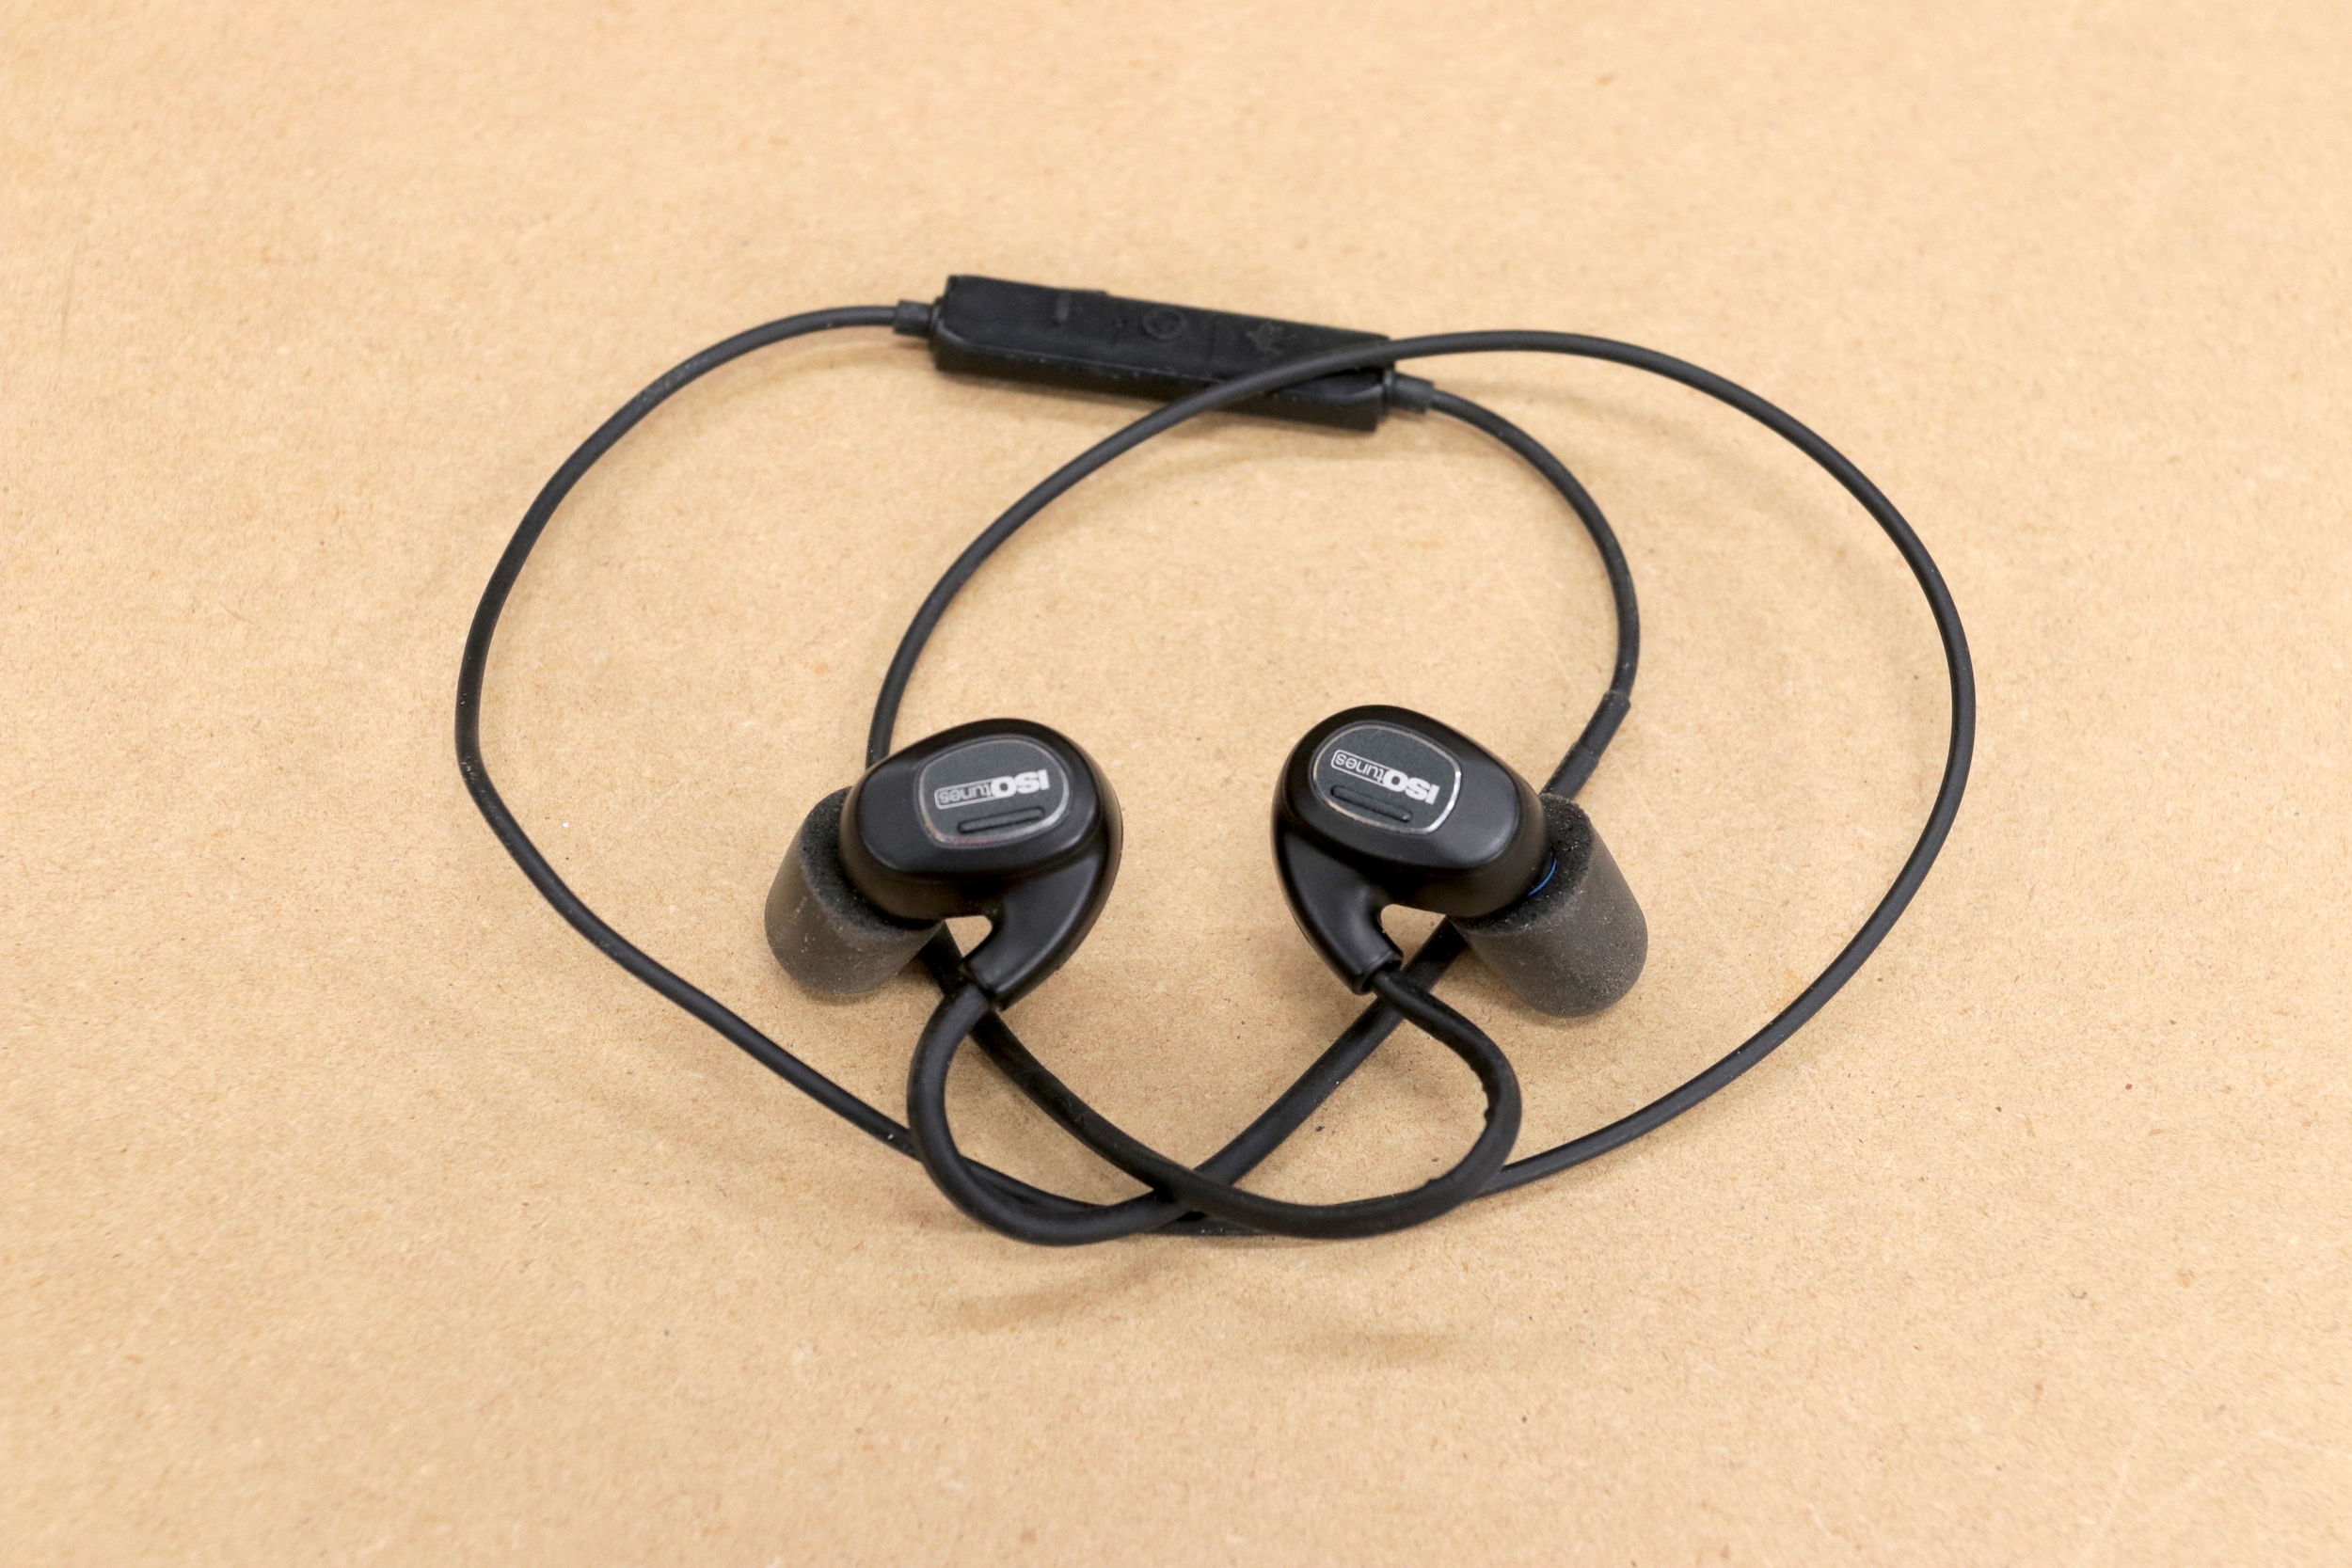 edde8c121f1 Depending on your preferences, your level of perception, and how the earbuds  fit your ears, you could walk away with a very different opinion.